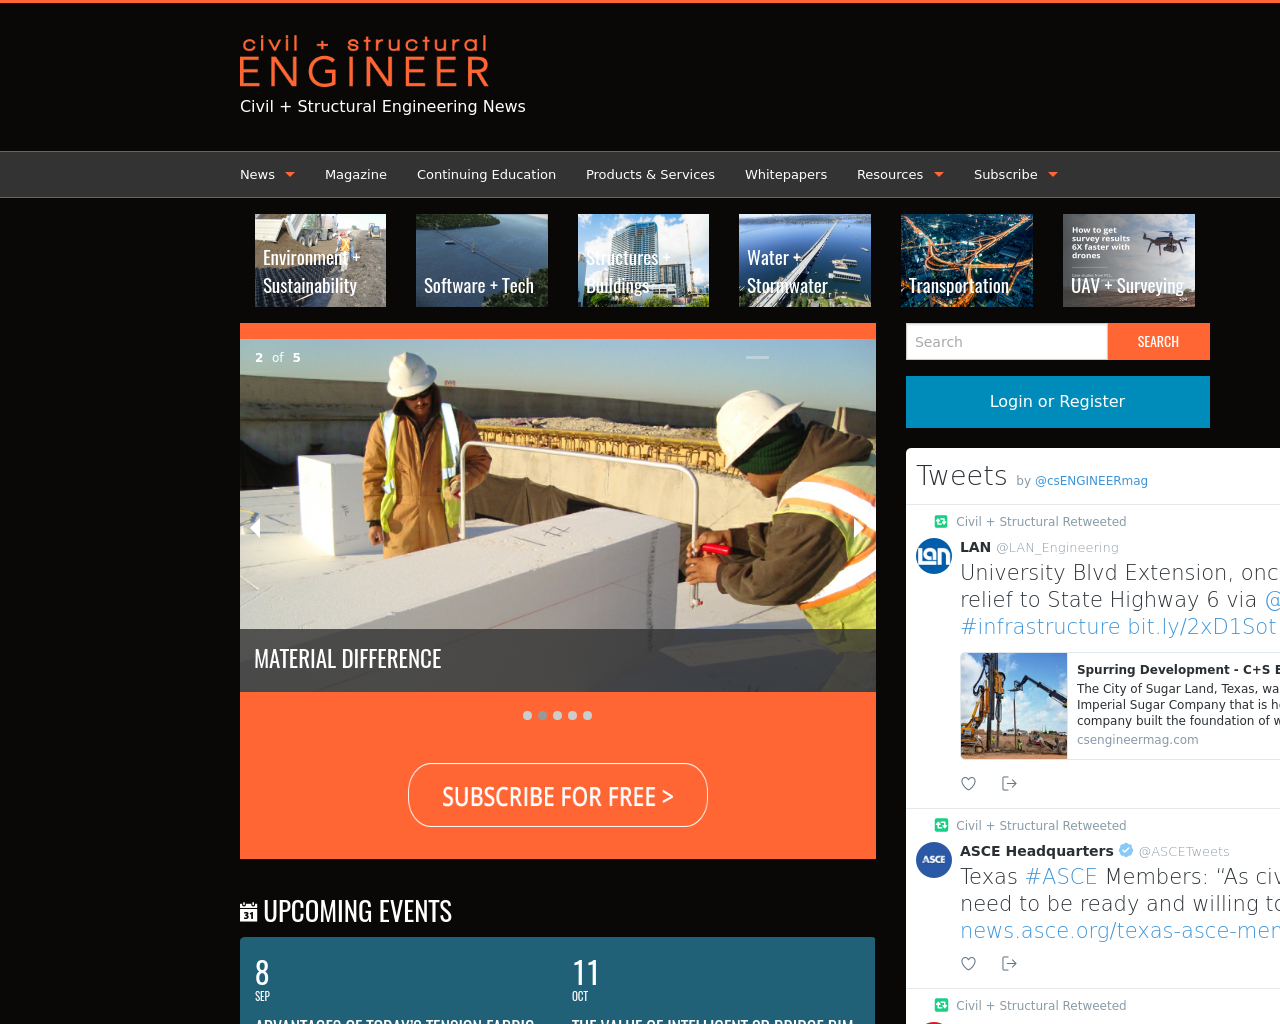 civil-+-structural-ENGINEER-Advertising-Reviews-Pricing